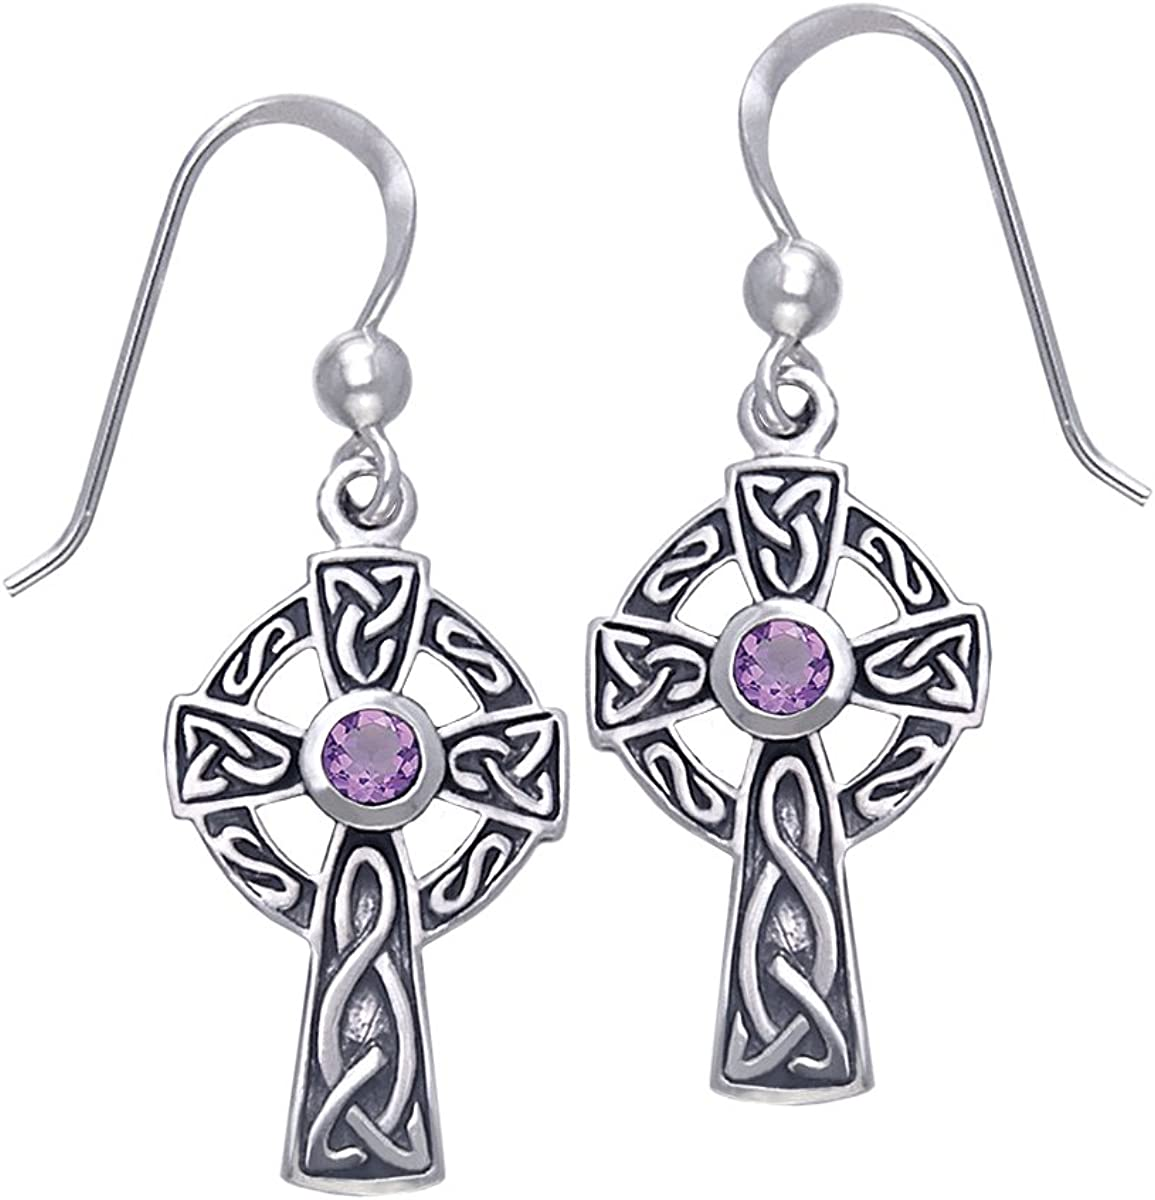 Jewelry Trends Sterling Silver Celtic Dangle with Earrings Las Clearance SALE! Limited time! Vegas Mall Cross